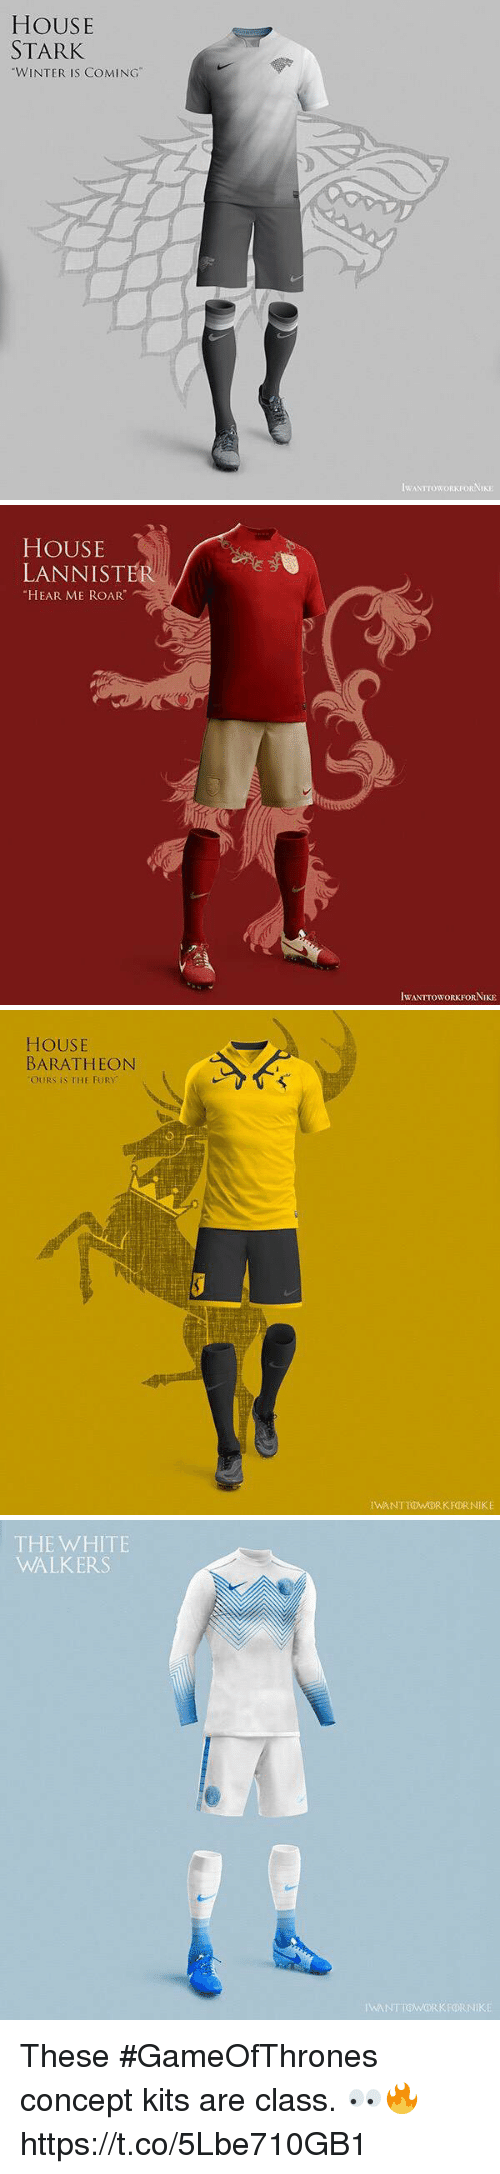 "baratheon: HOUSE  STARK  ""WINTER IS COMING""  IWANTTOWORKFORNIKE   HOUSE  LANNISTER  HEAR ME ROAR  IWANTTOWORKFORNIKE   HOUSE  BARATHEON  OURS IS THE FURY  IWANTTOWORKFORNIKE   THE WHITE  WALKERS  IWANTTOWORKFORNIKE These #GameOfThrones concept kits are class. 👀🔥 https://t.co/5Lbe710GB1"